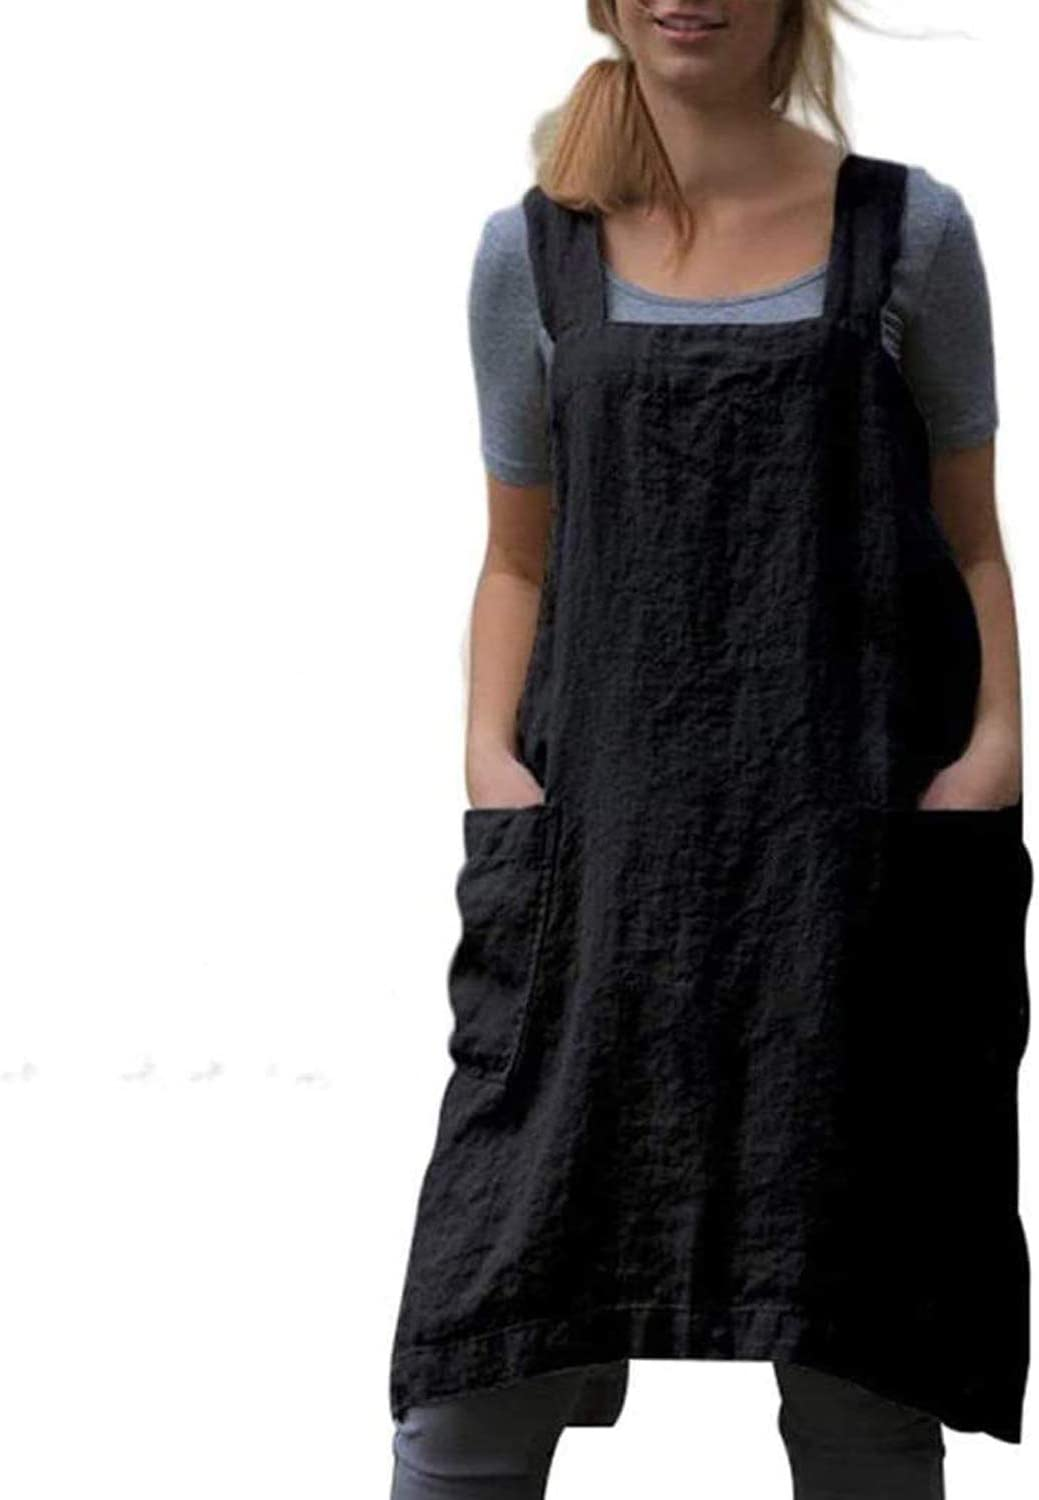 YESDOO Cotton Linen Apron Cross Back Apron for Women with Pockets Pinafore Dress for Baking Cooking Gardening Party Without Waist Ties Apron